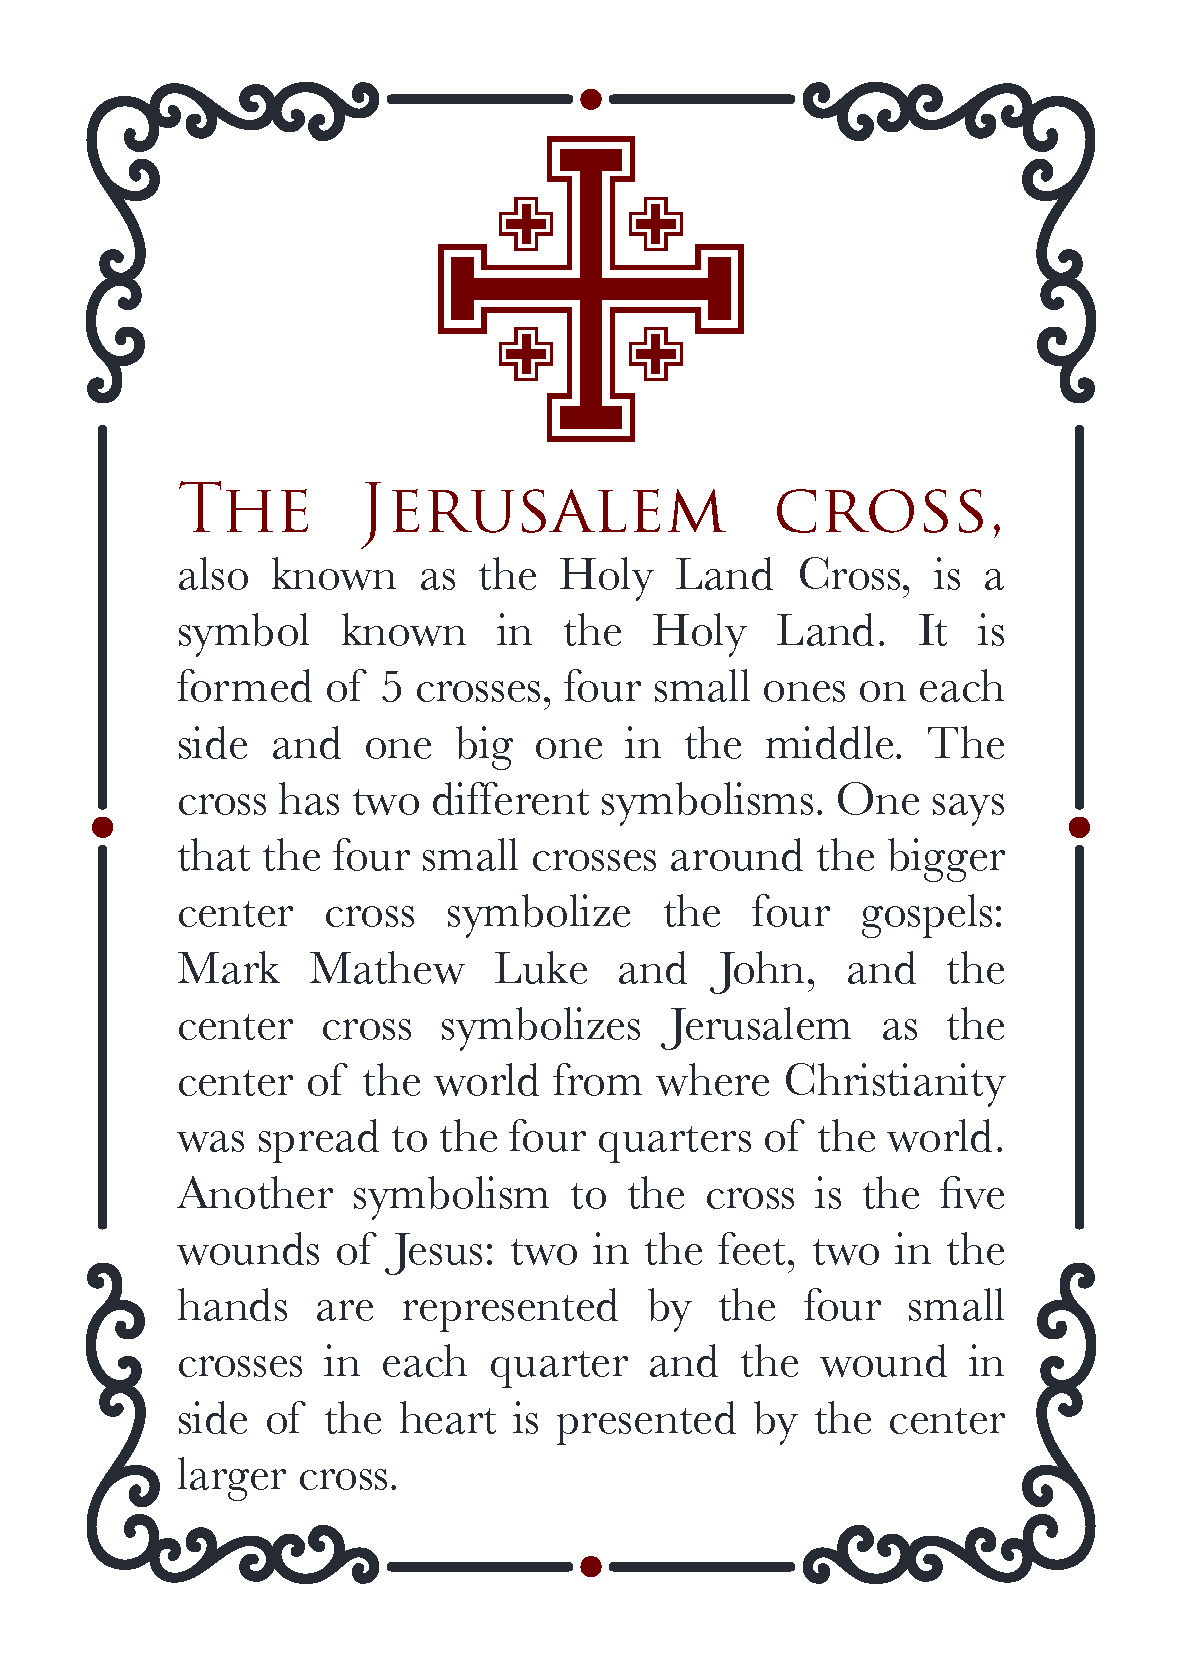 The Jerusalem Cross